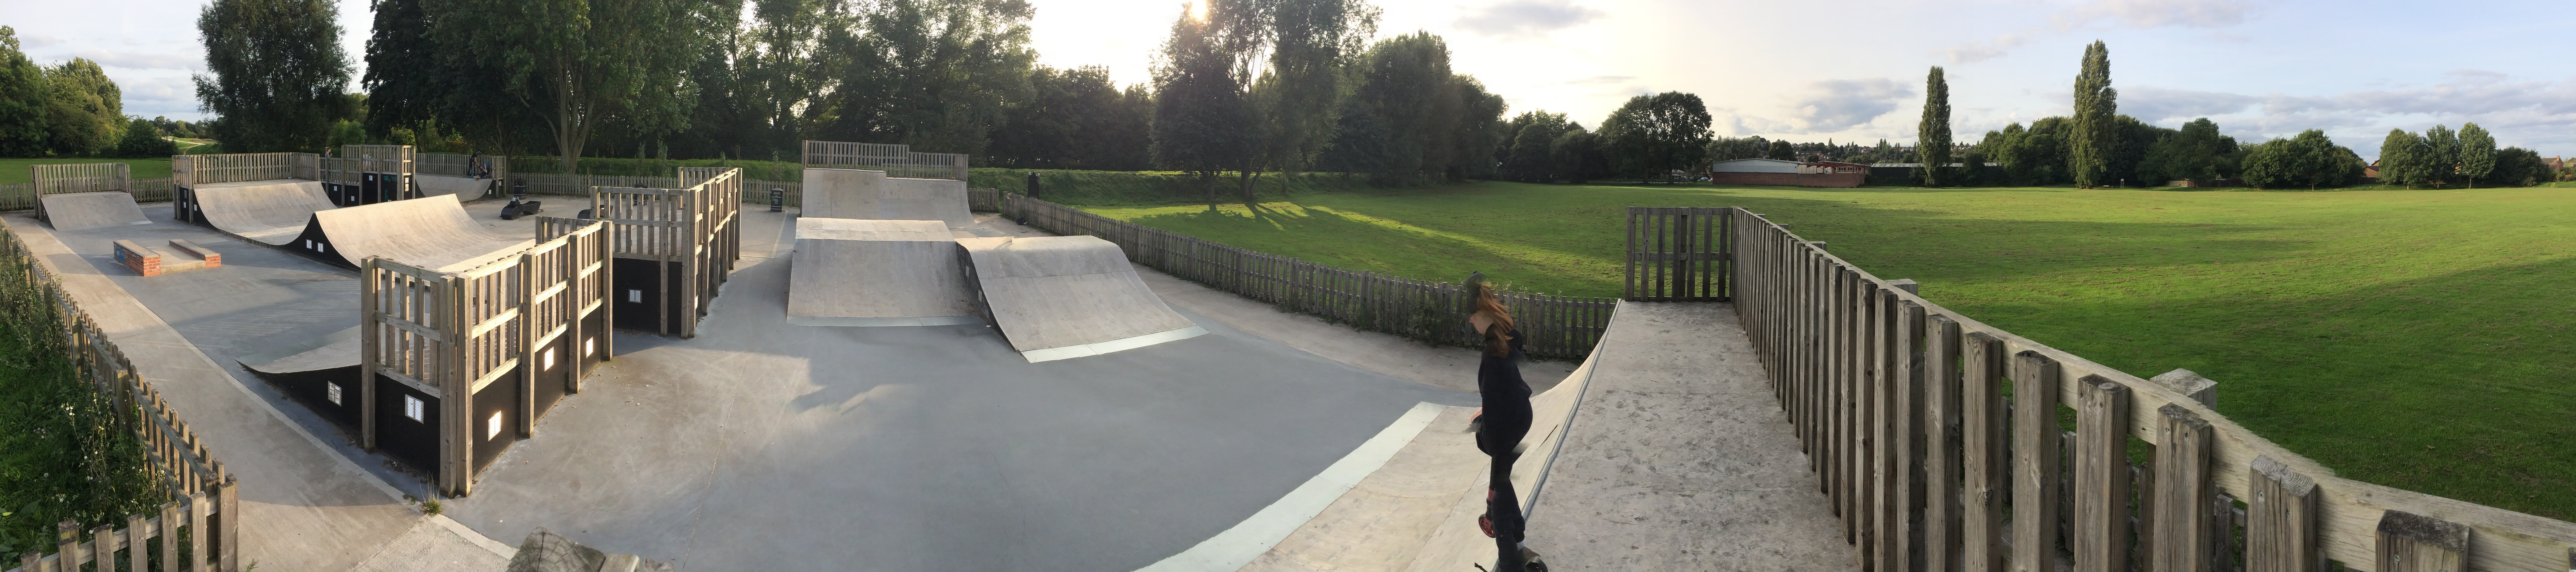 The Josh Dale memorial skatepark Nottingham showing the street section.